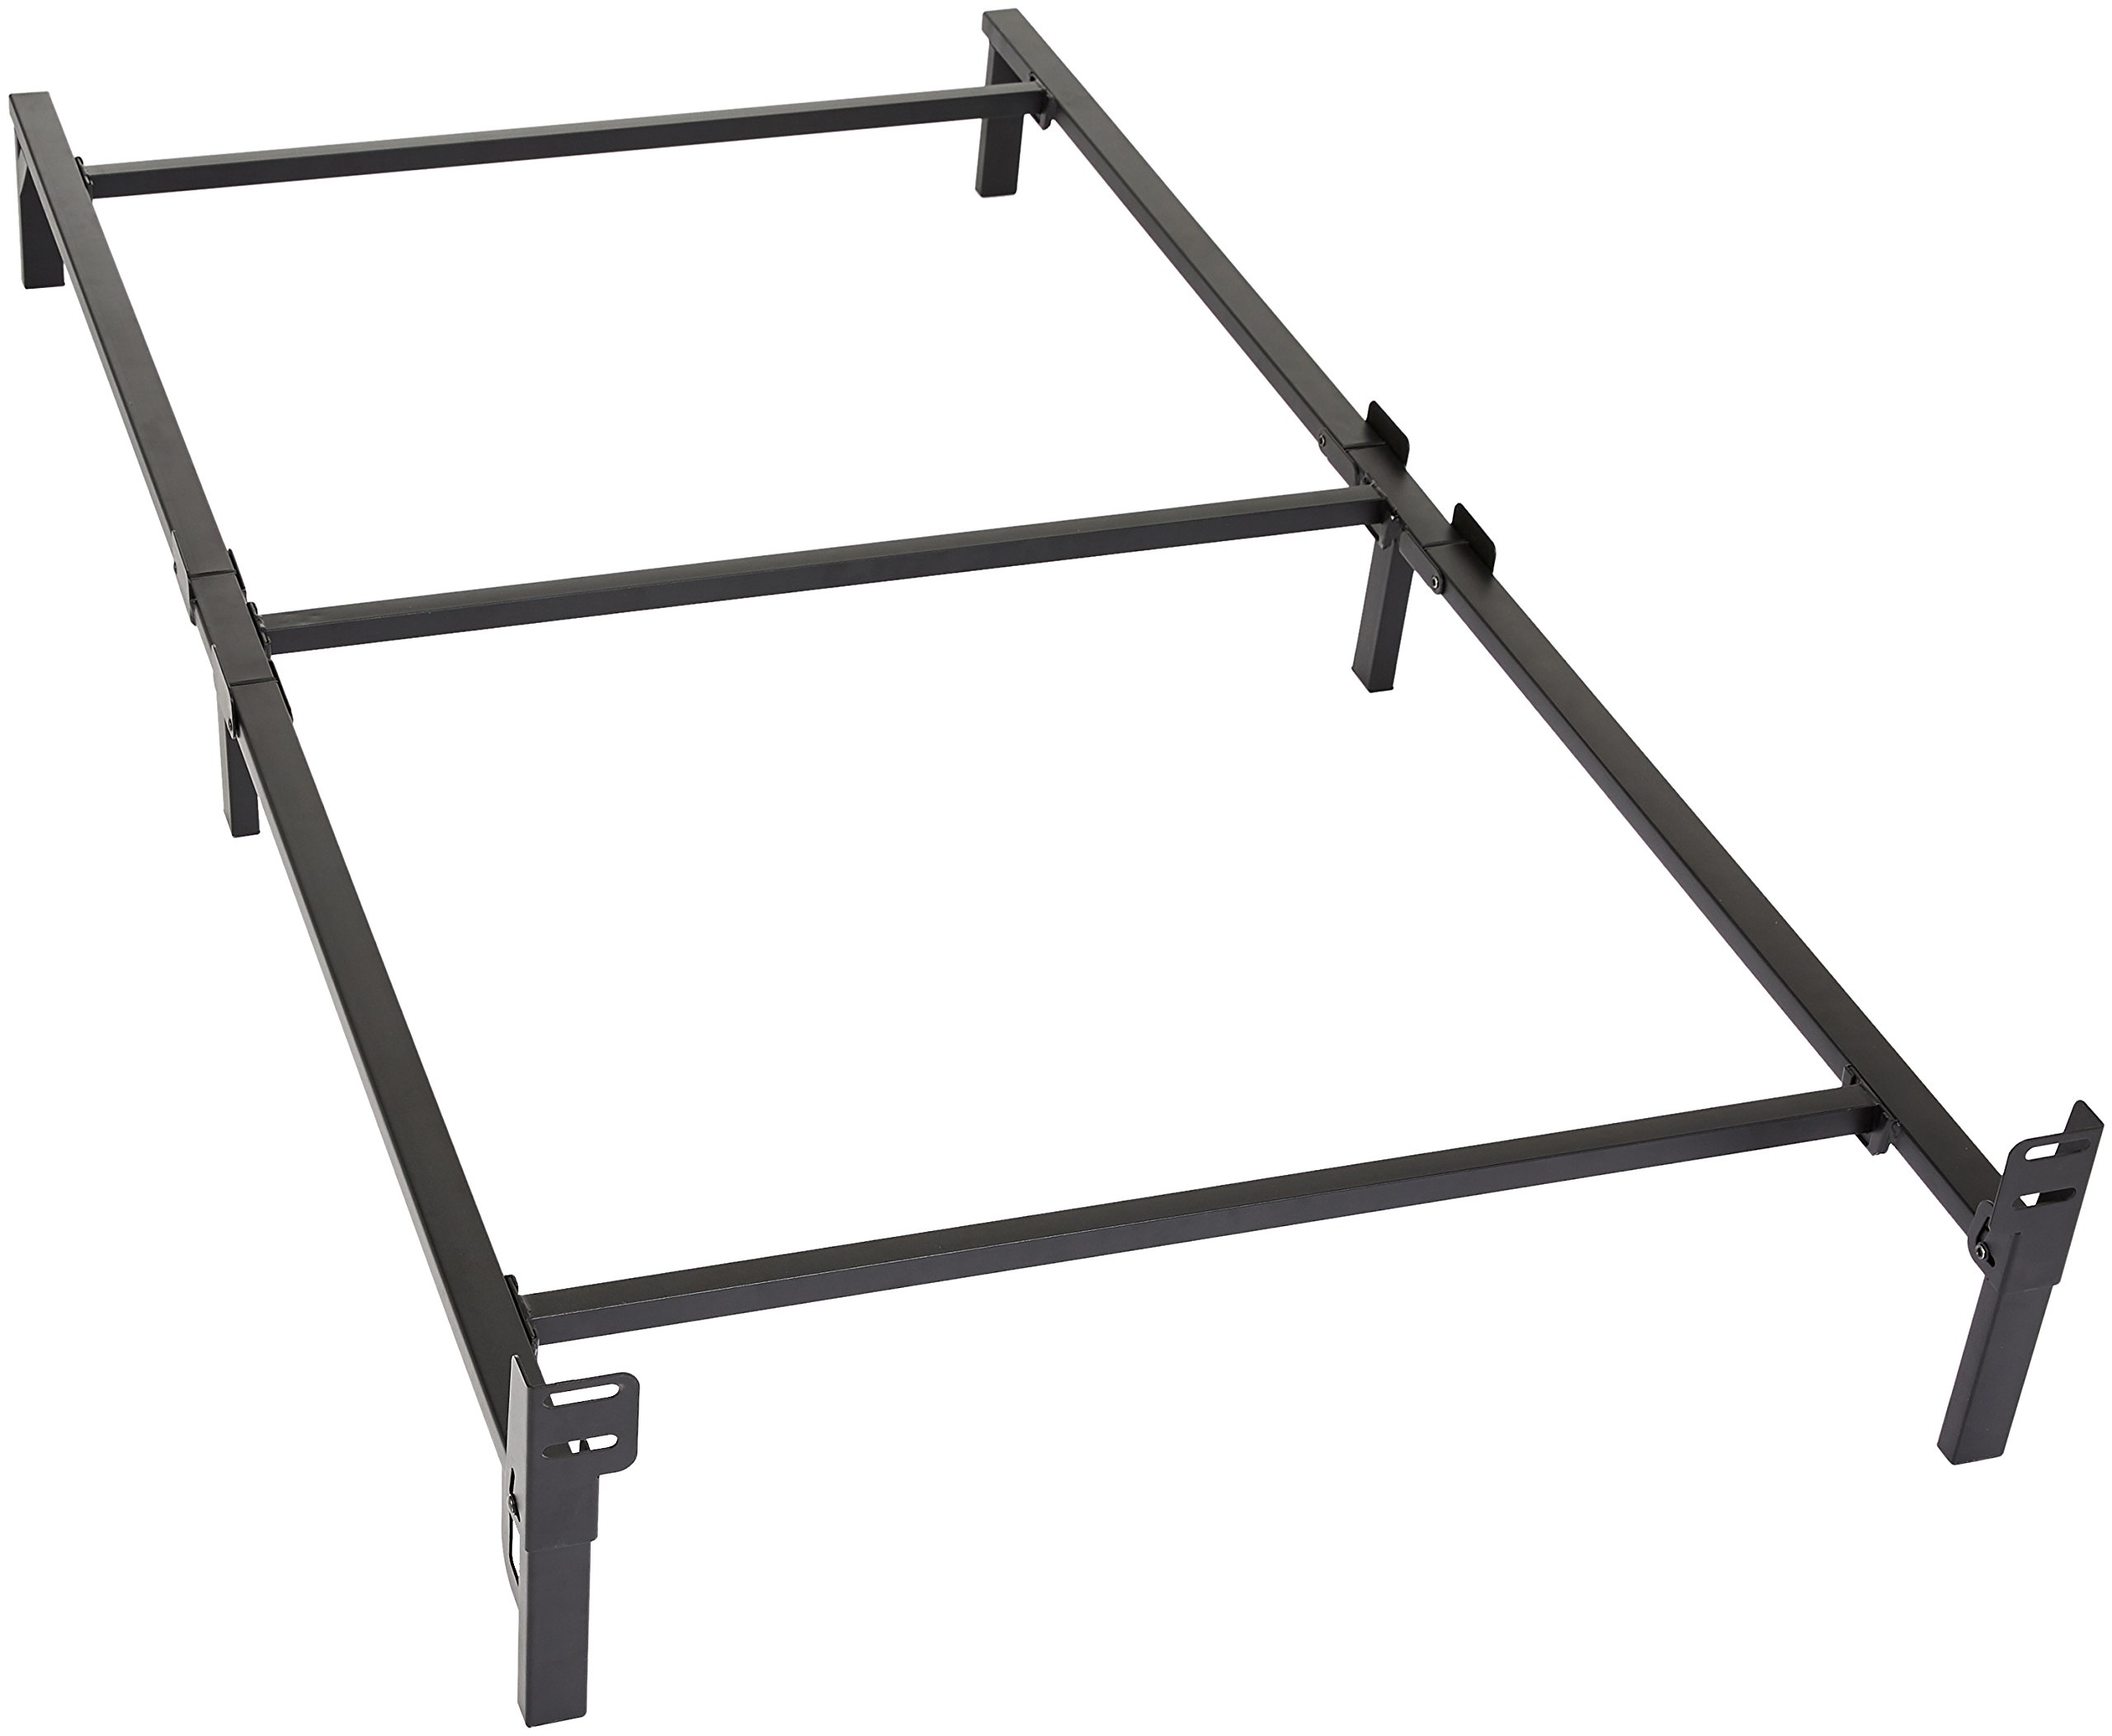 Amazon Basics 6-Leg Support Metal Bed Frame - Strong Support for Box Spring and Mattress Set - Twin Size Bed by AmazonBasics